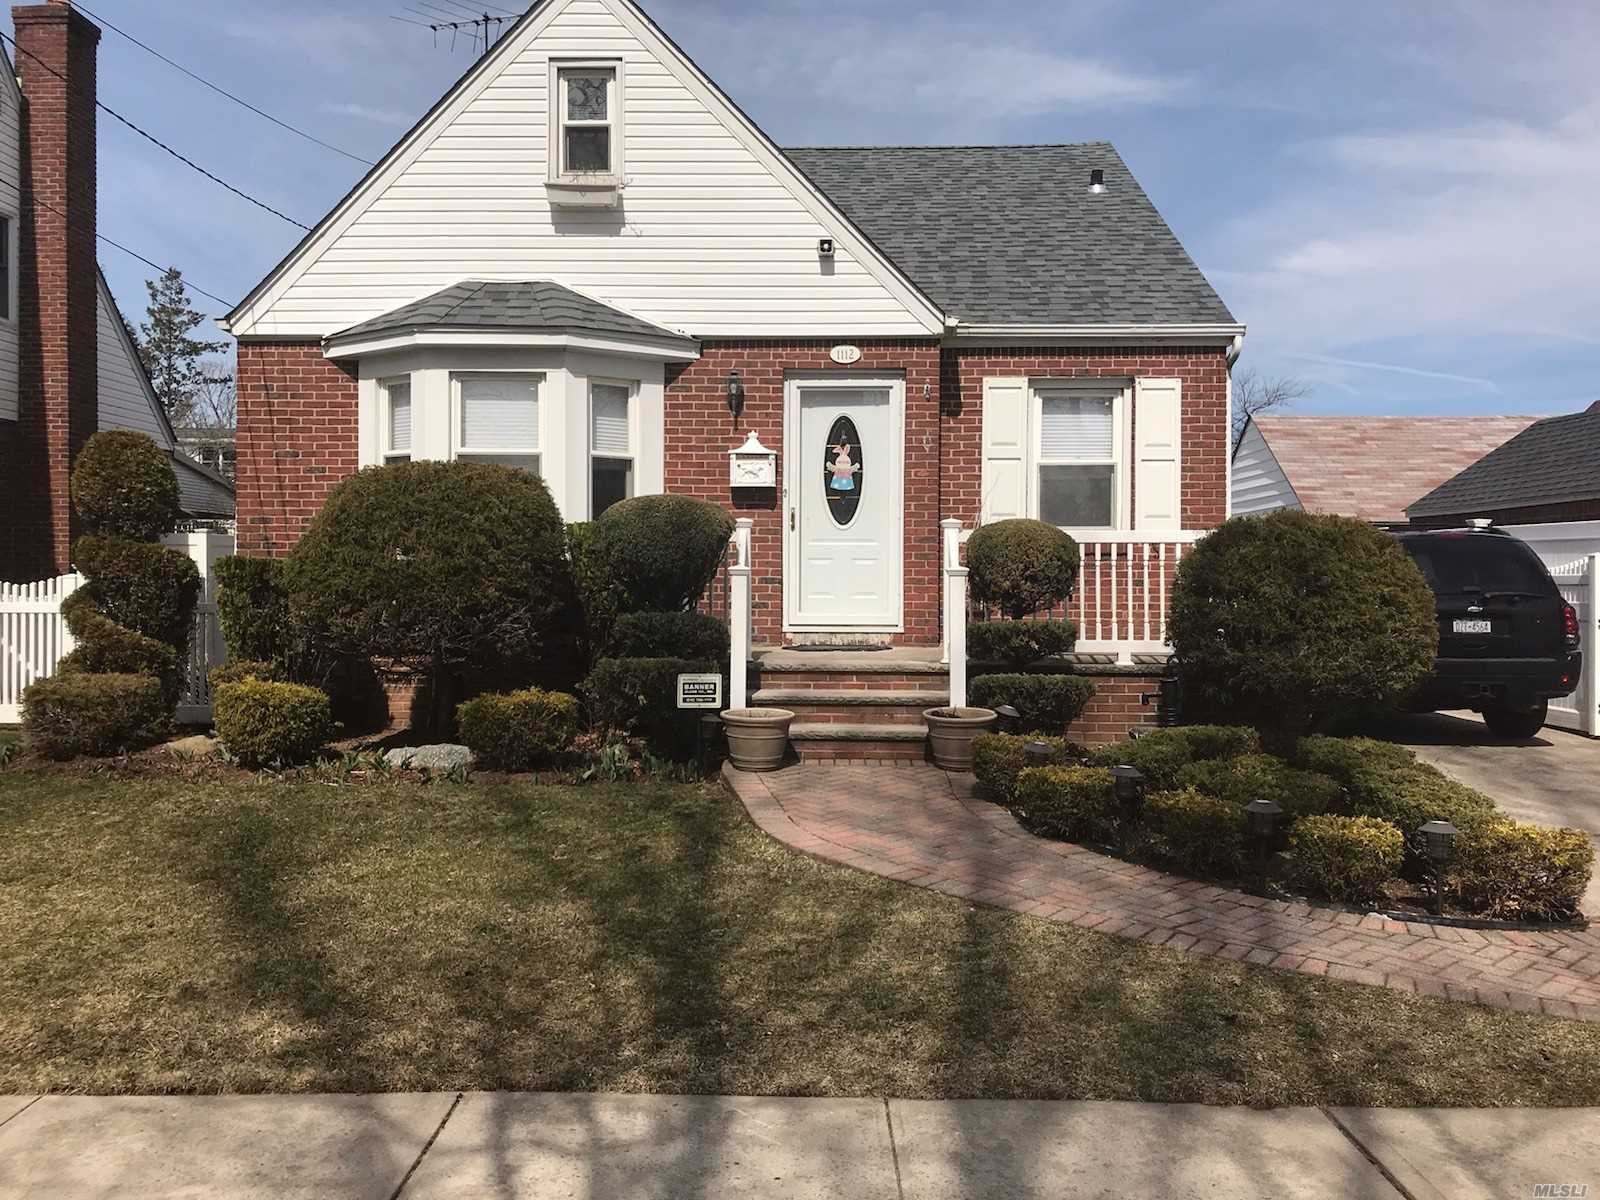 Great location, convenient to all shopping, transportation, stainless steel appliances, granite counter tops, hi hats, gas heating, new roof 2018, sprinkler system to enhance landscaping,  updated alarm system,  Franklin Square Schools